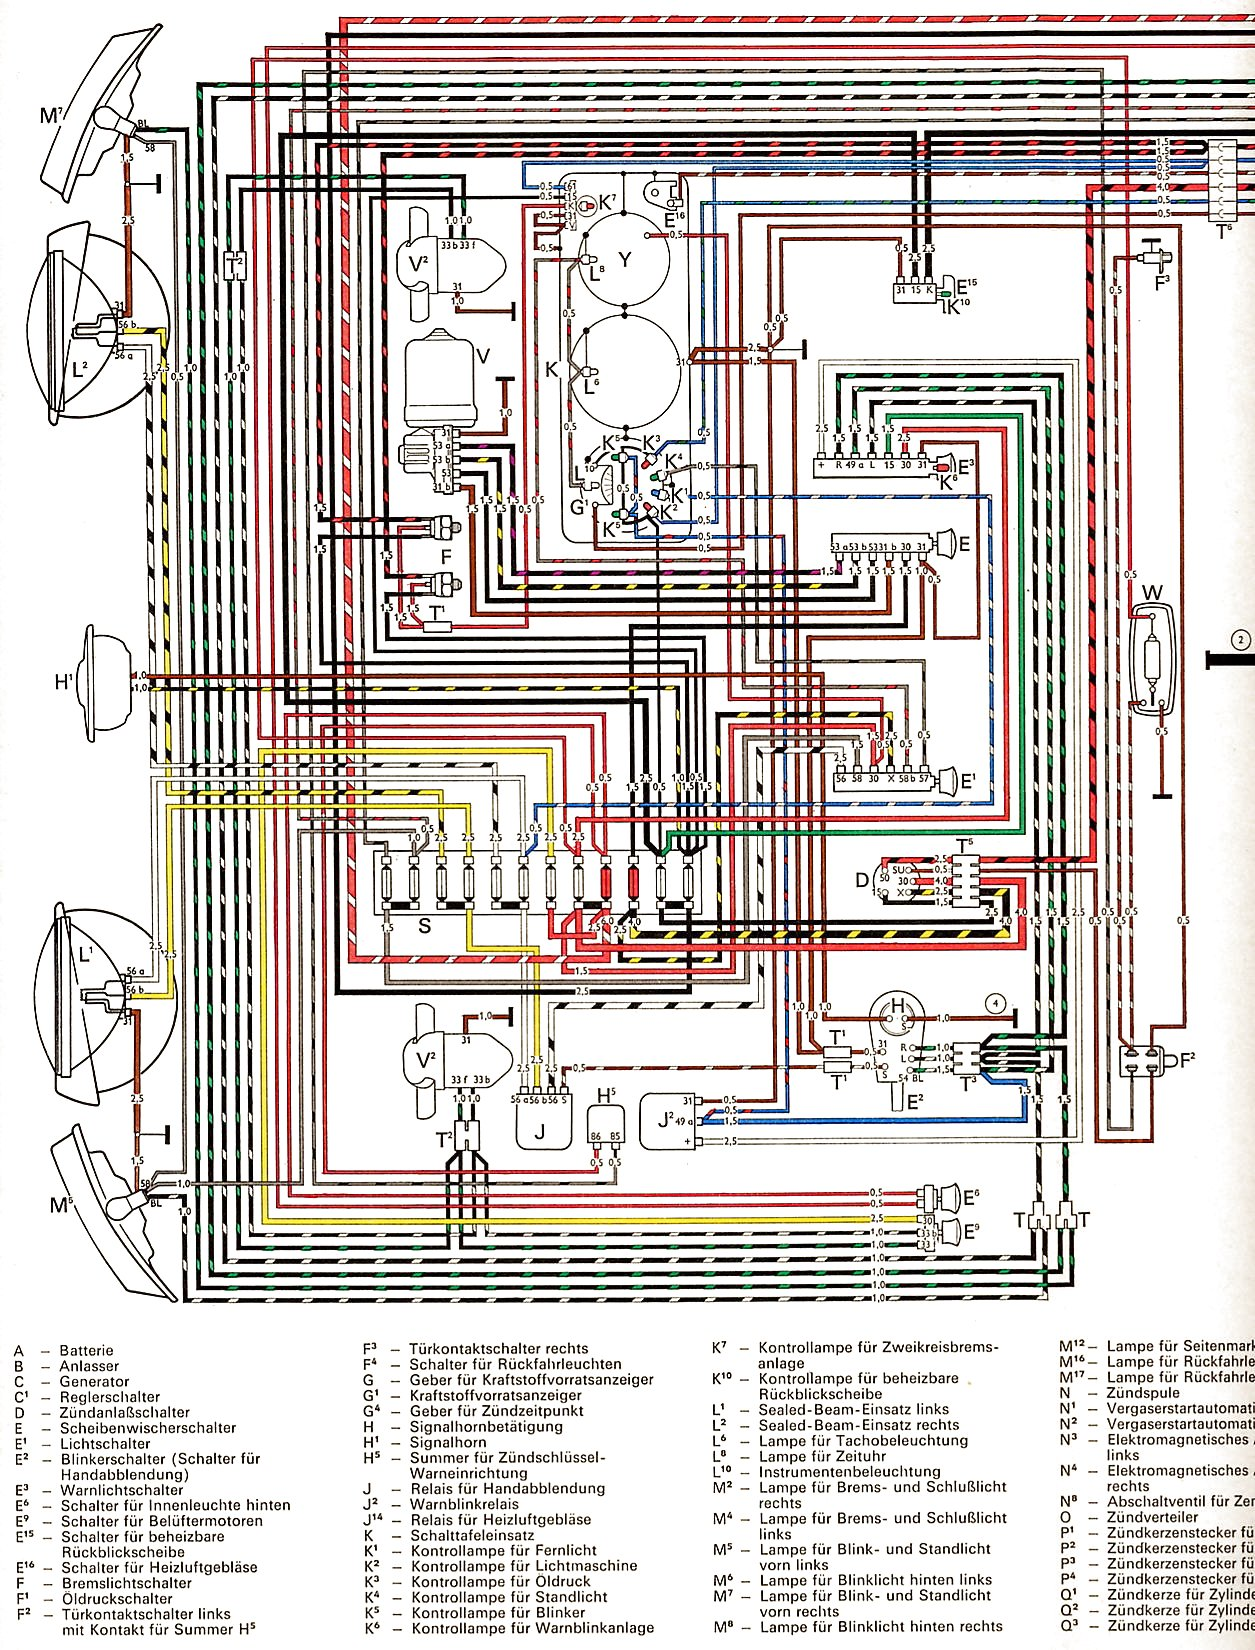 Transporter_USA_from_August_1971 1 vw wiring diagrams 1970 vw beetle electrical wiring diagram at soozxer.org